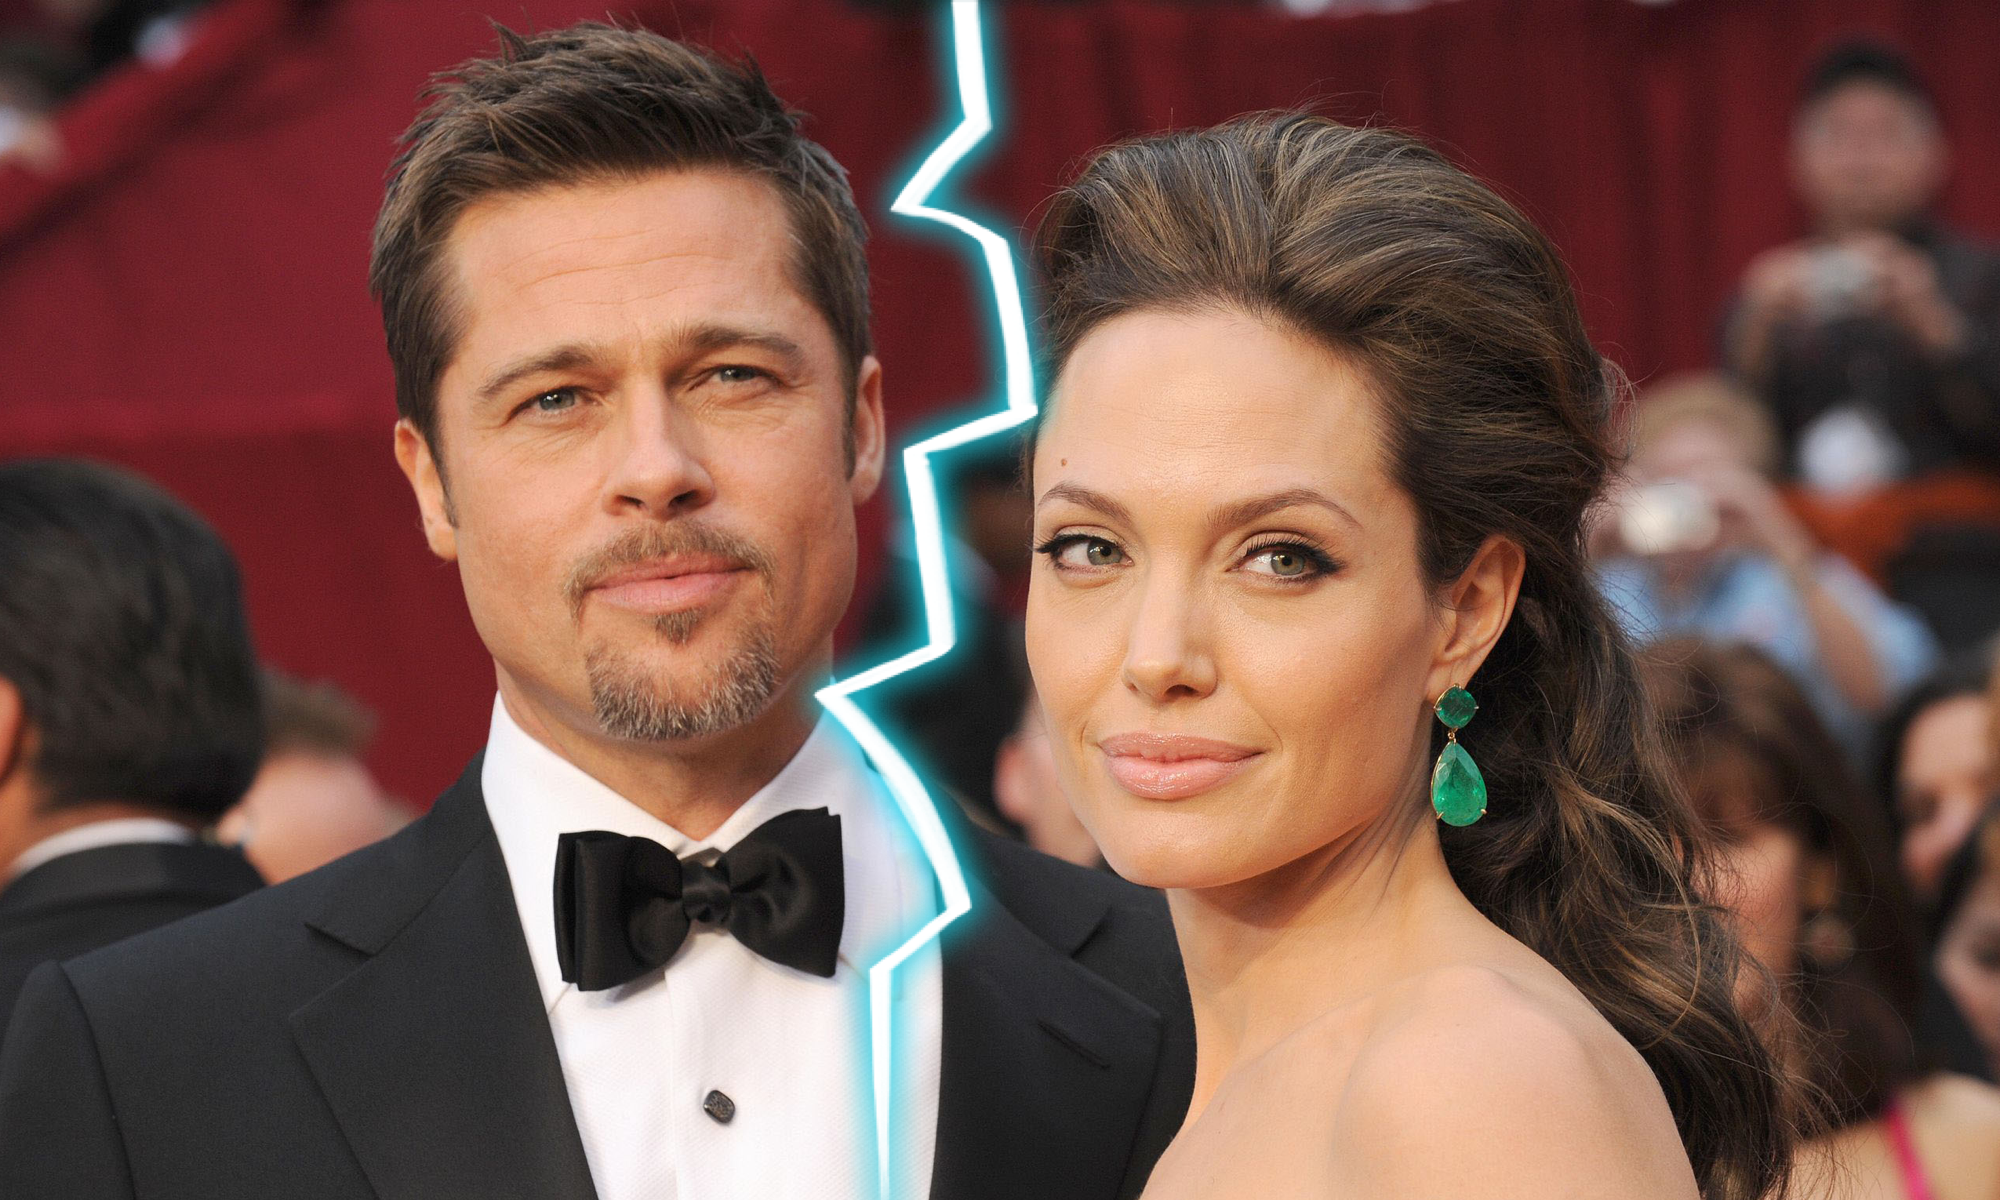 Are You More Brad Pitt Or Angelina Jolie? Take this quiz and find out today!